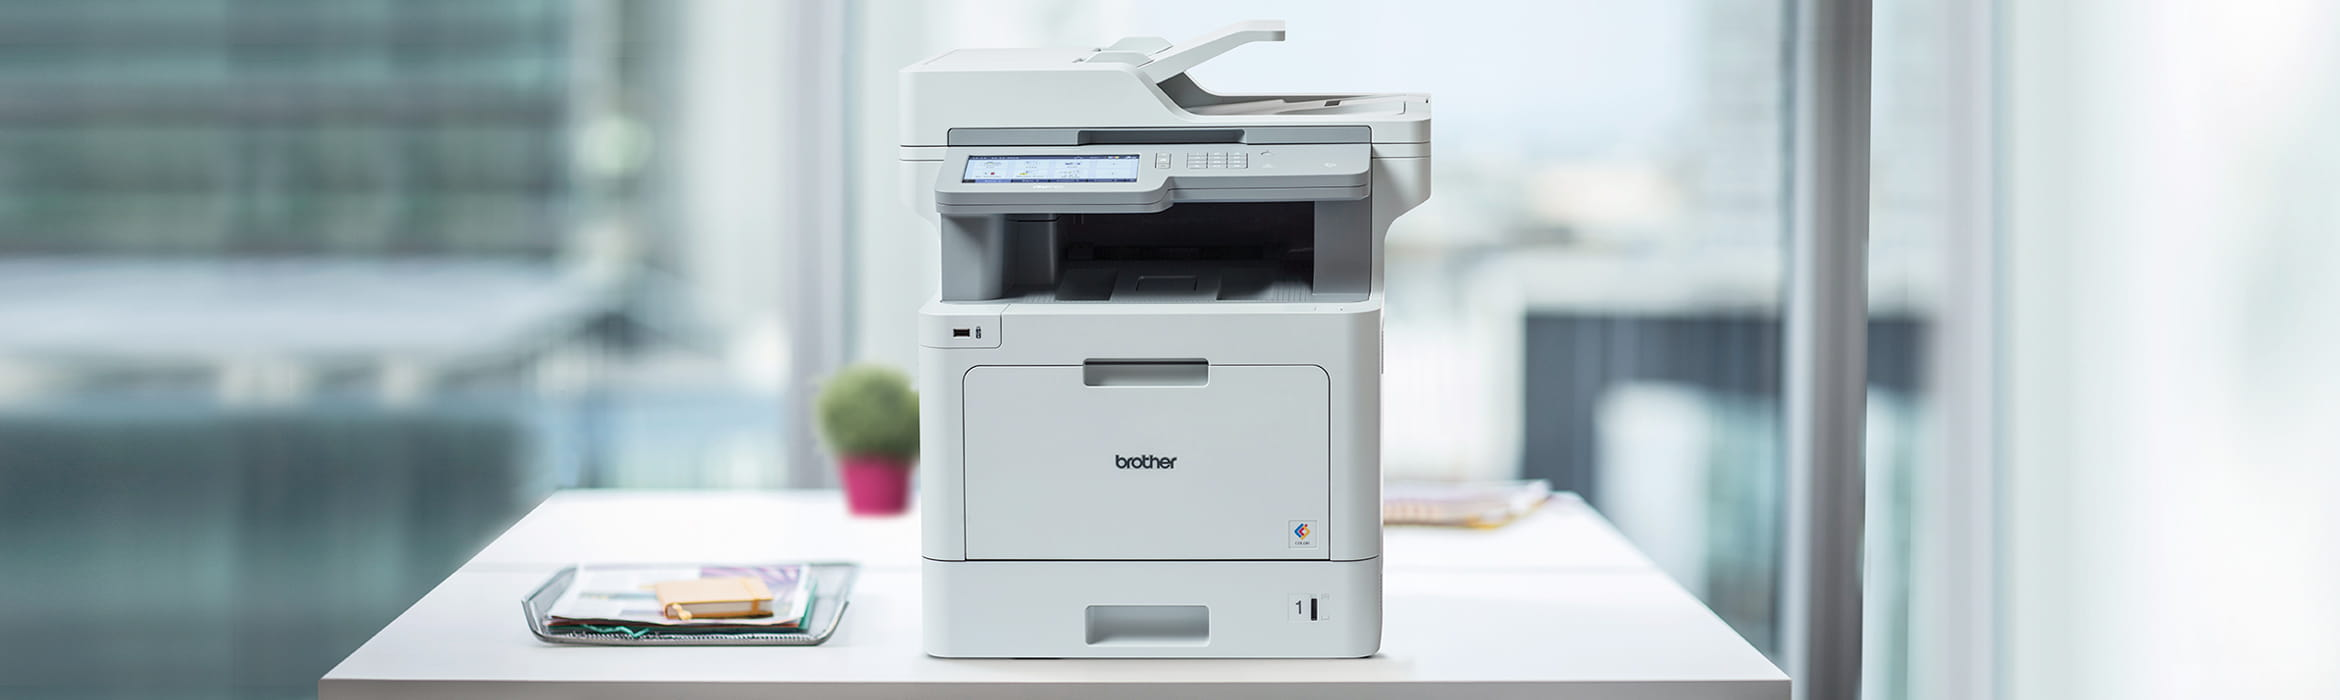 MFC-L9570CDW business colour laser multifunction printer